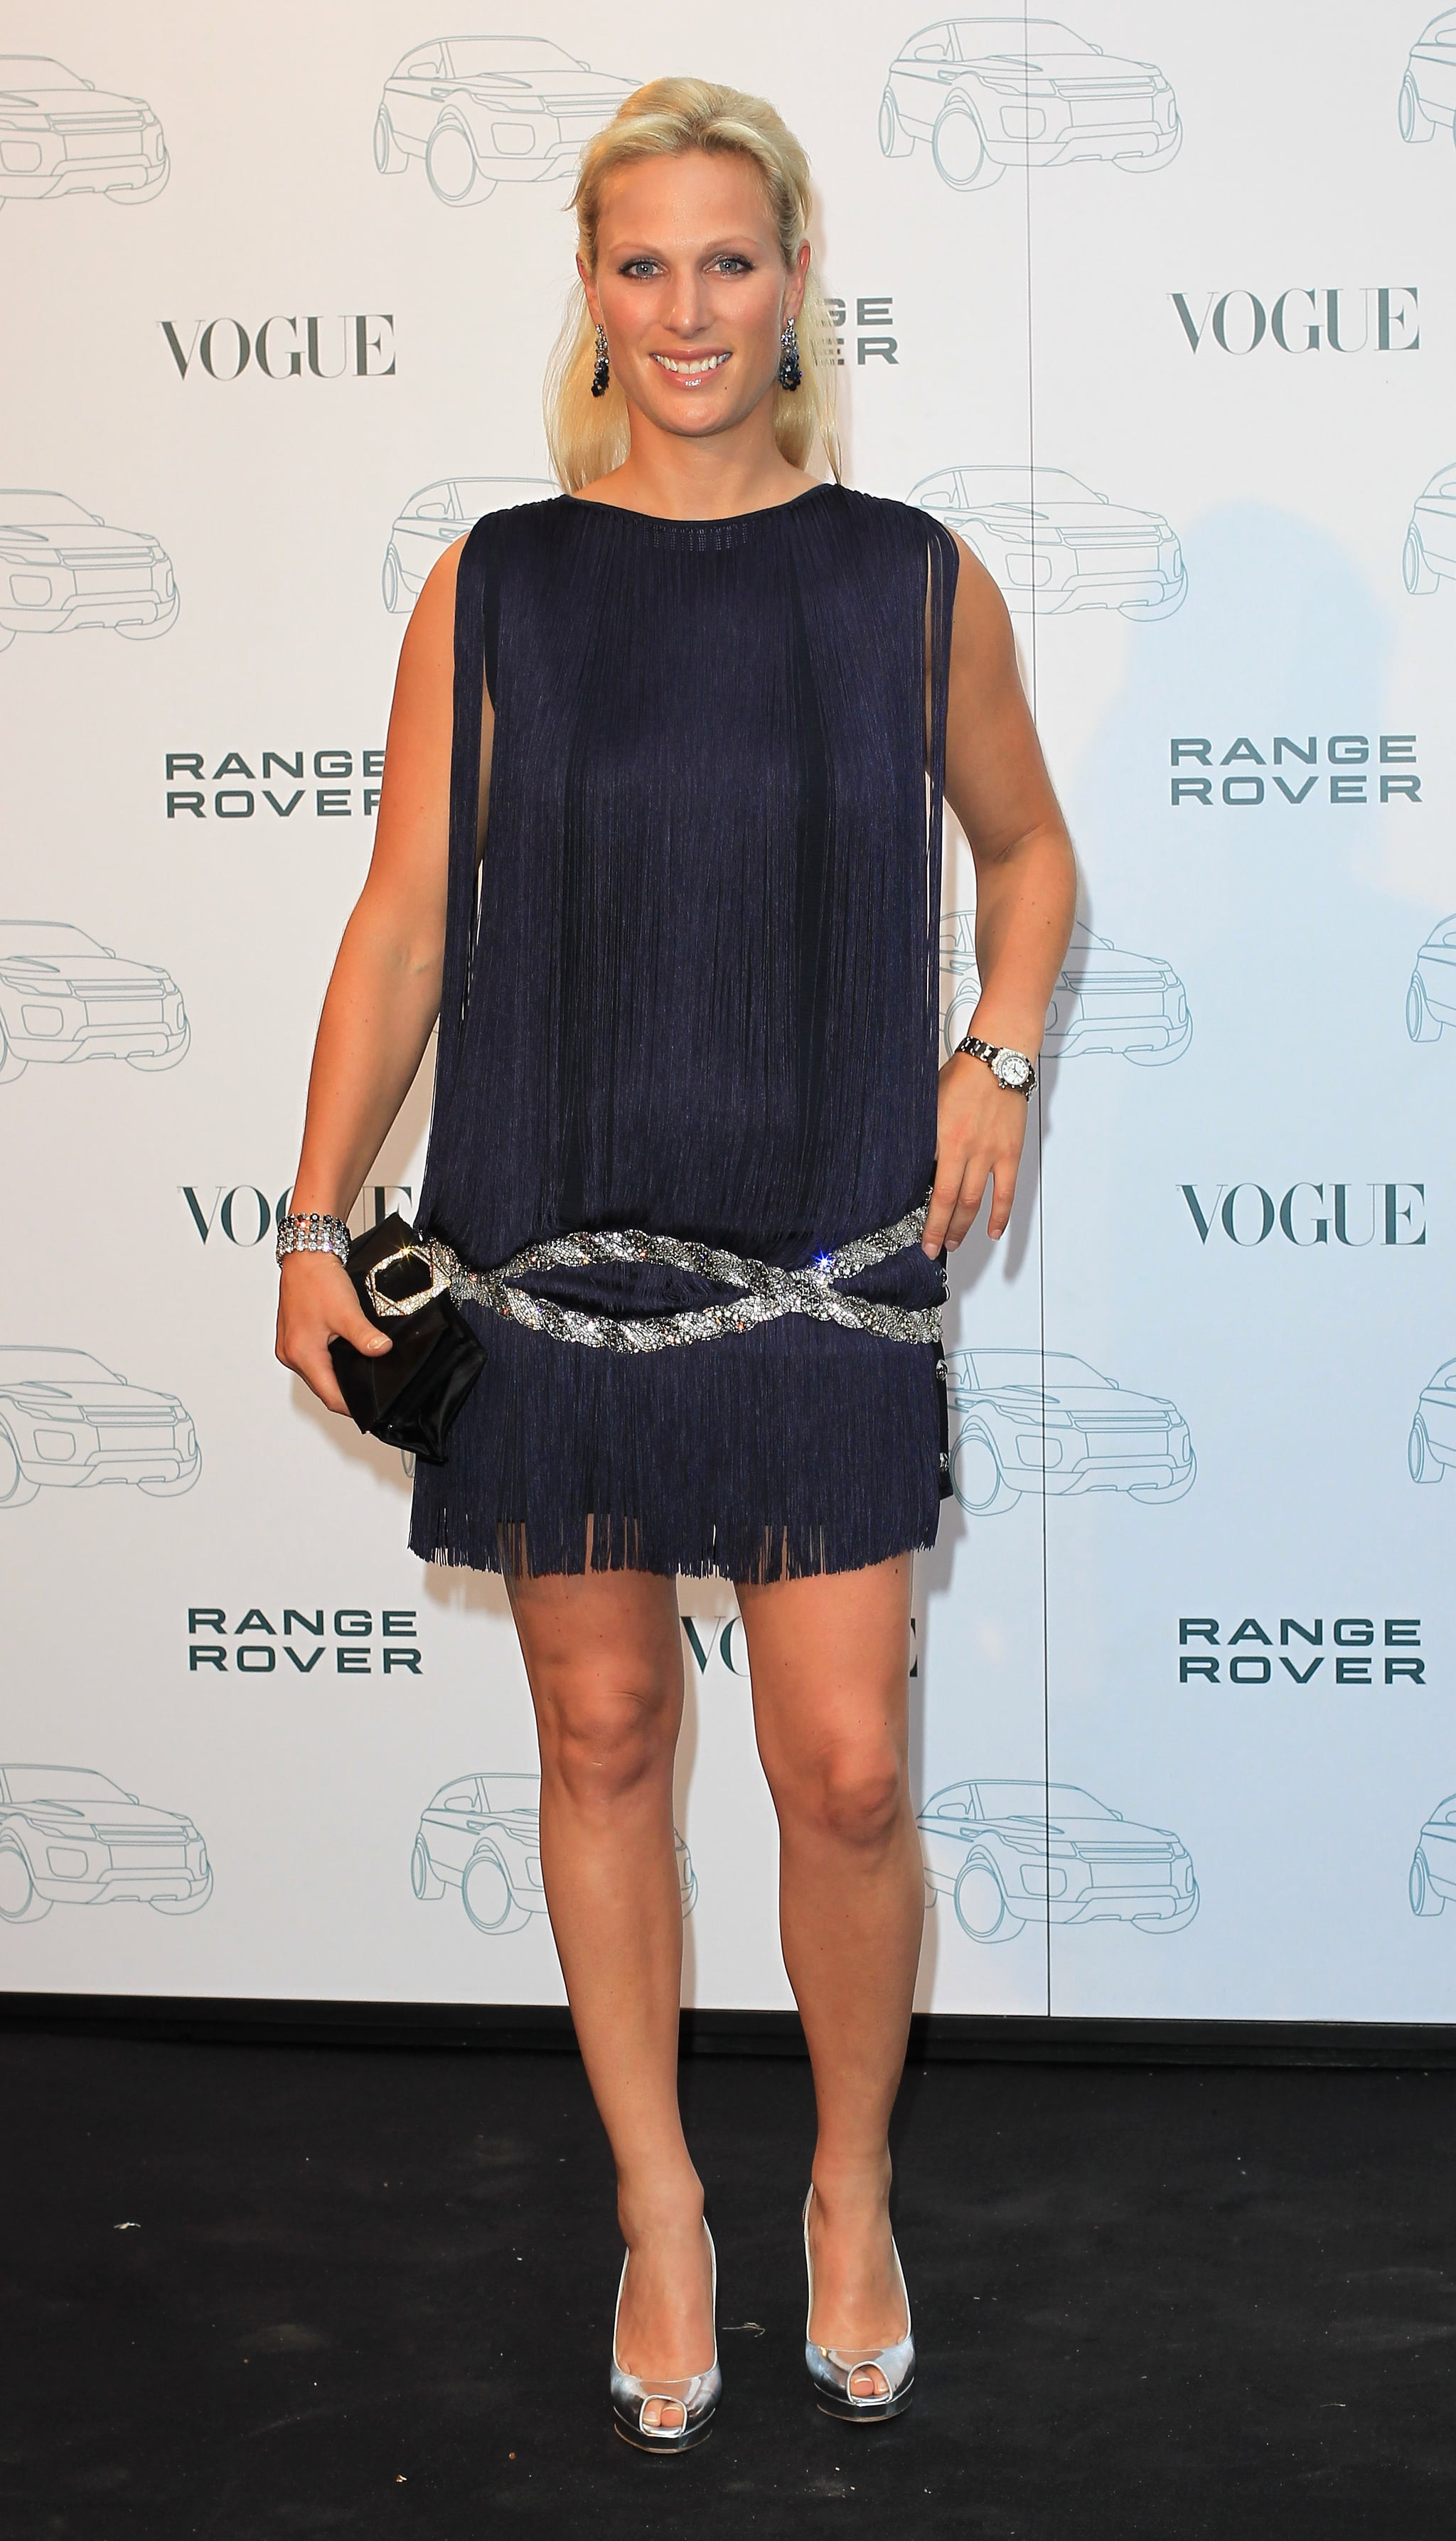 Zara Celebrated The 40th Anniversary Of Range Rover In A